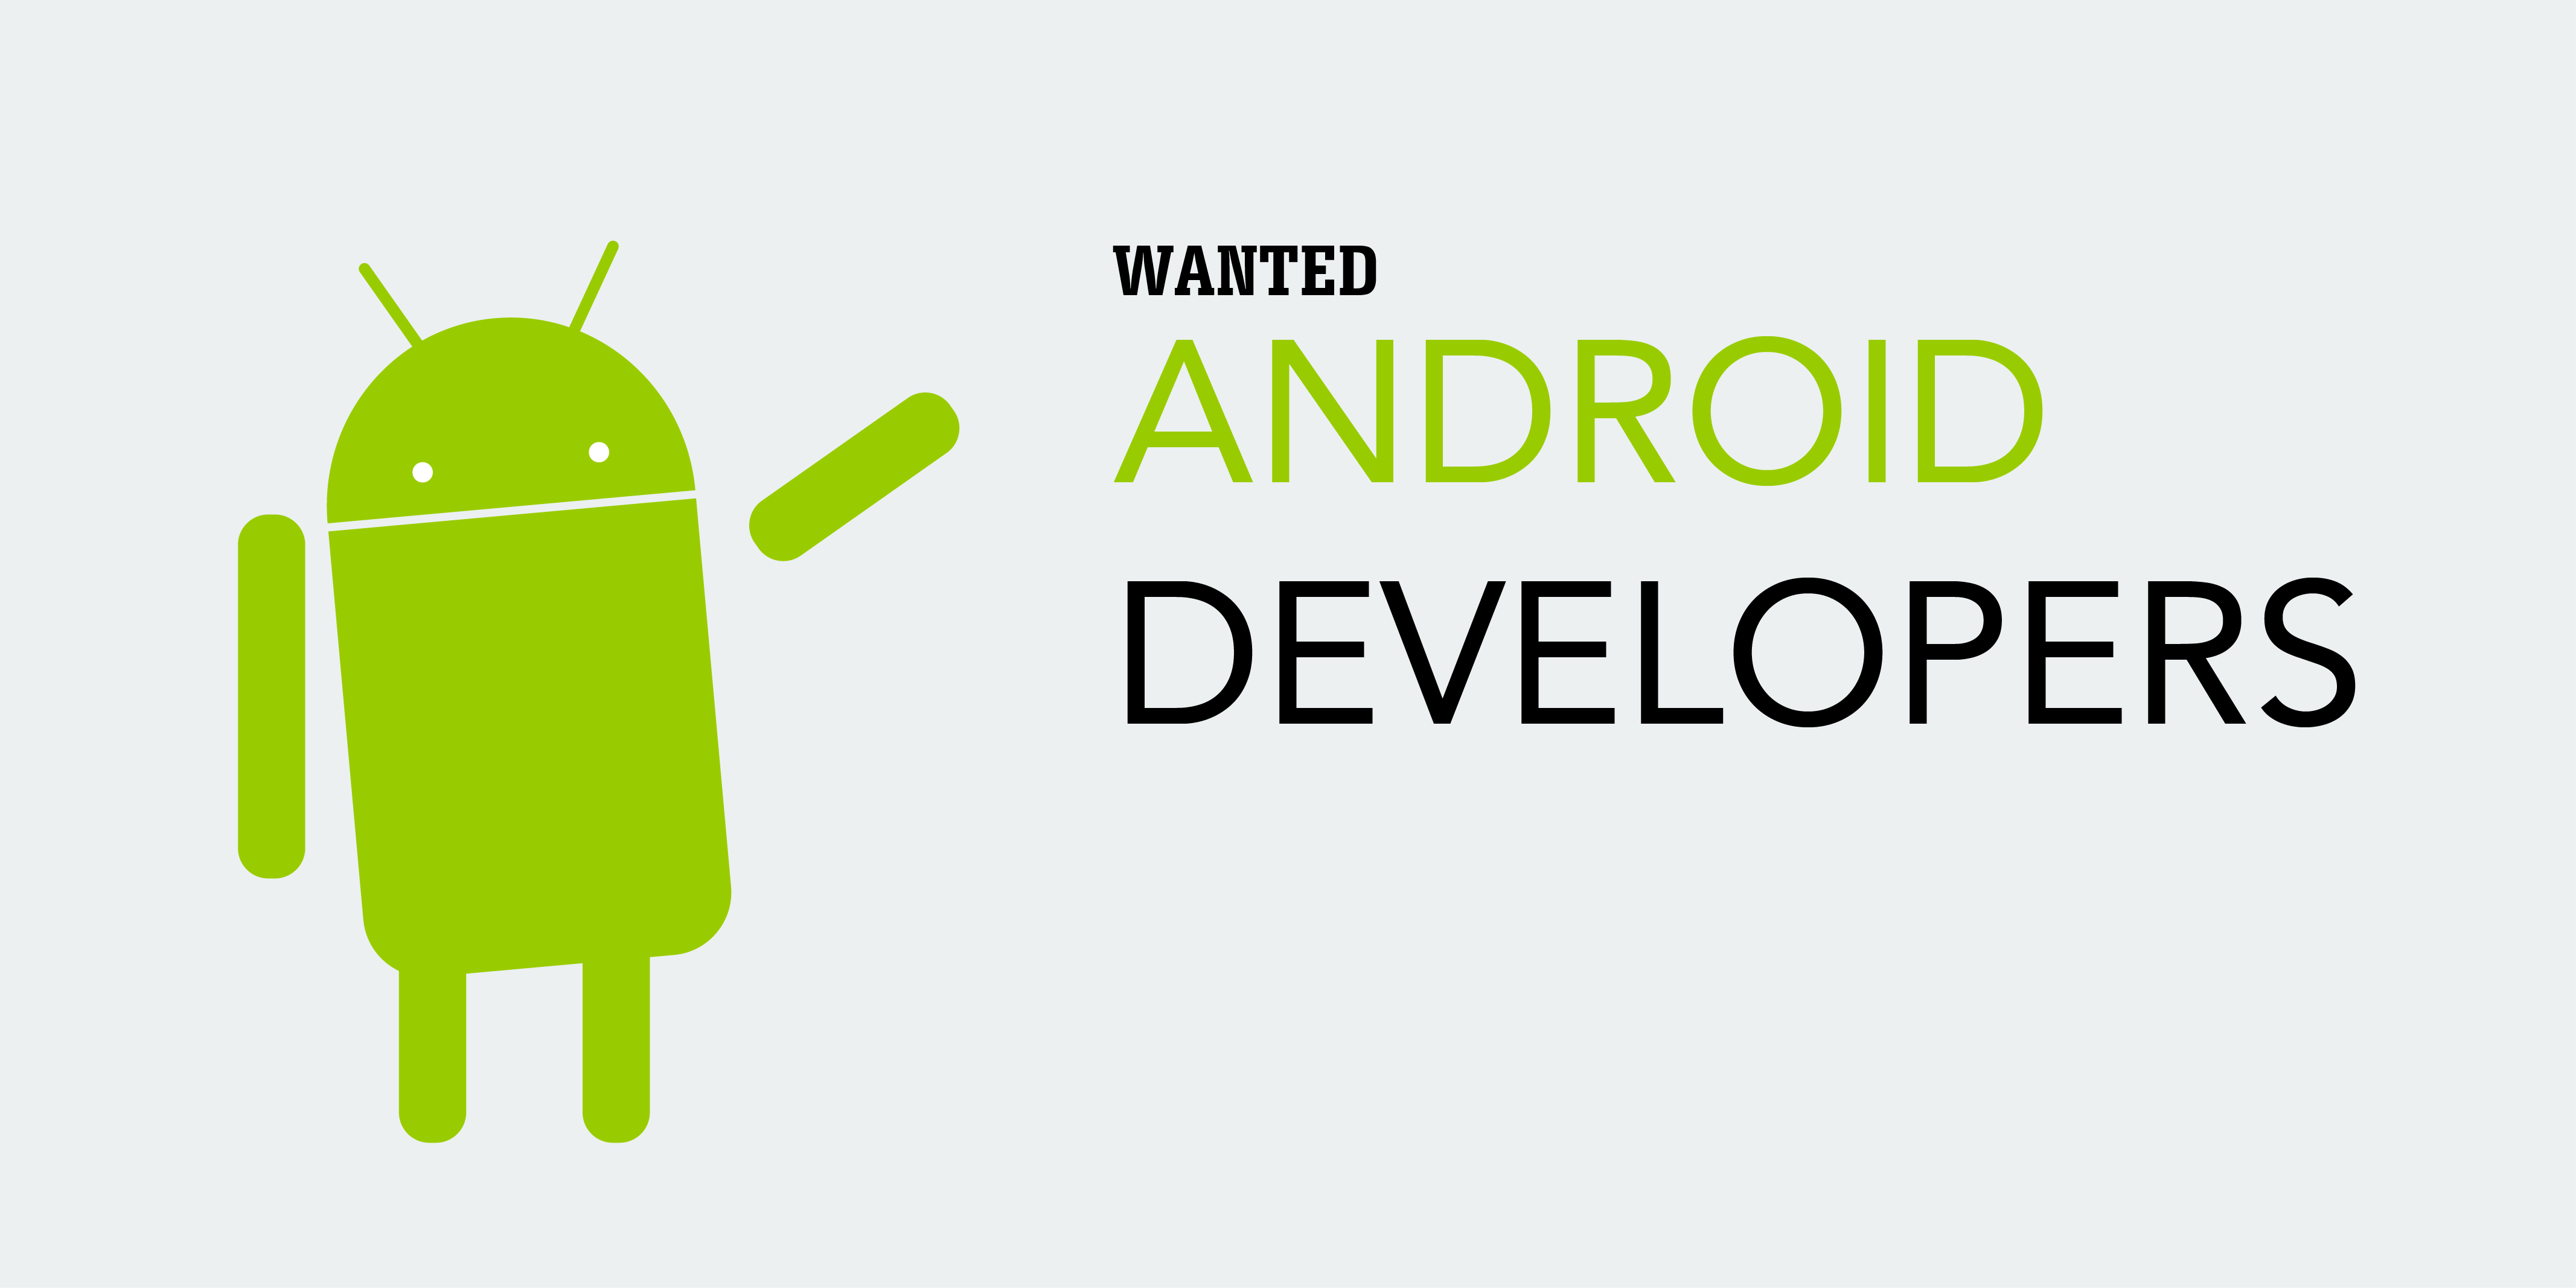 Are you sorting out a skilled Android App Developer? Thus